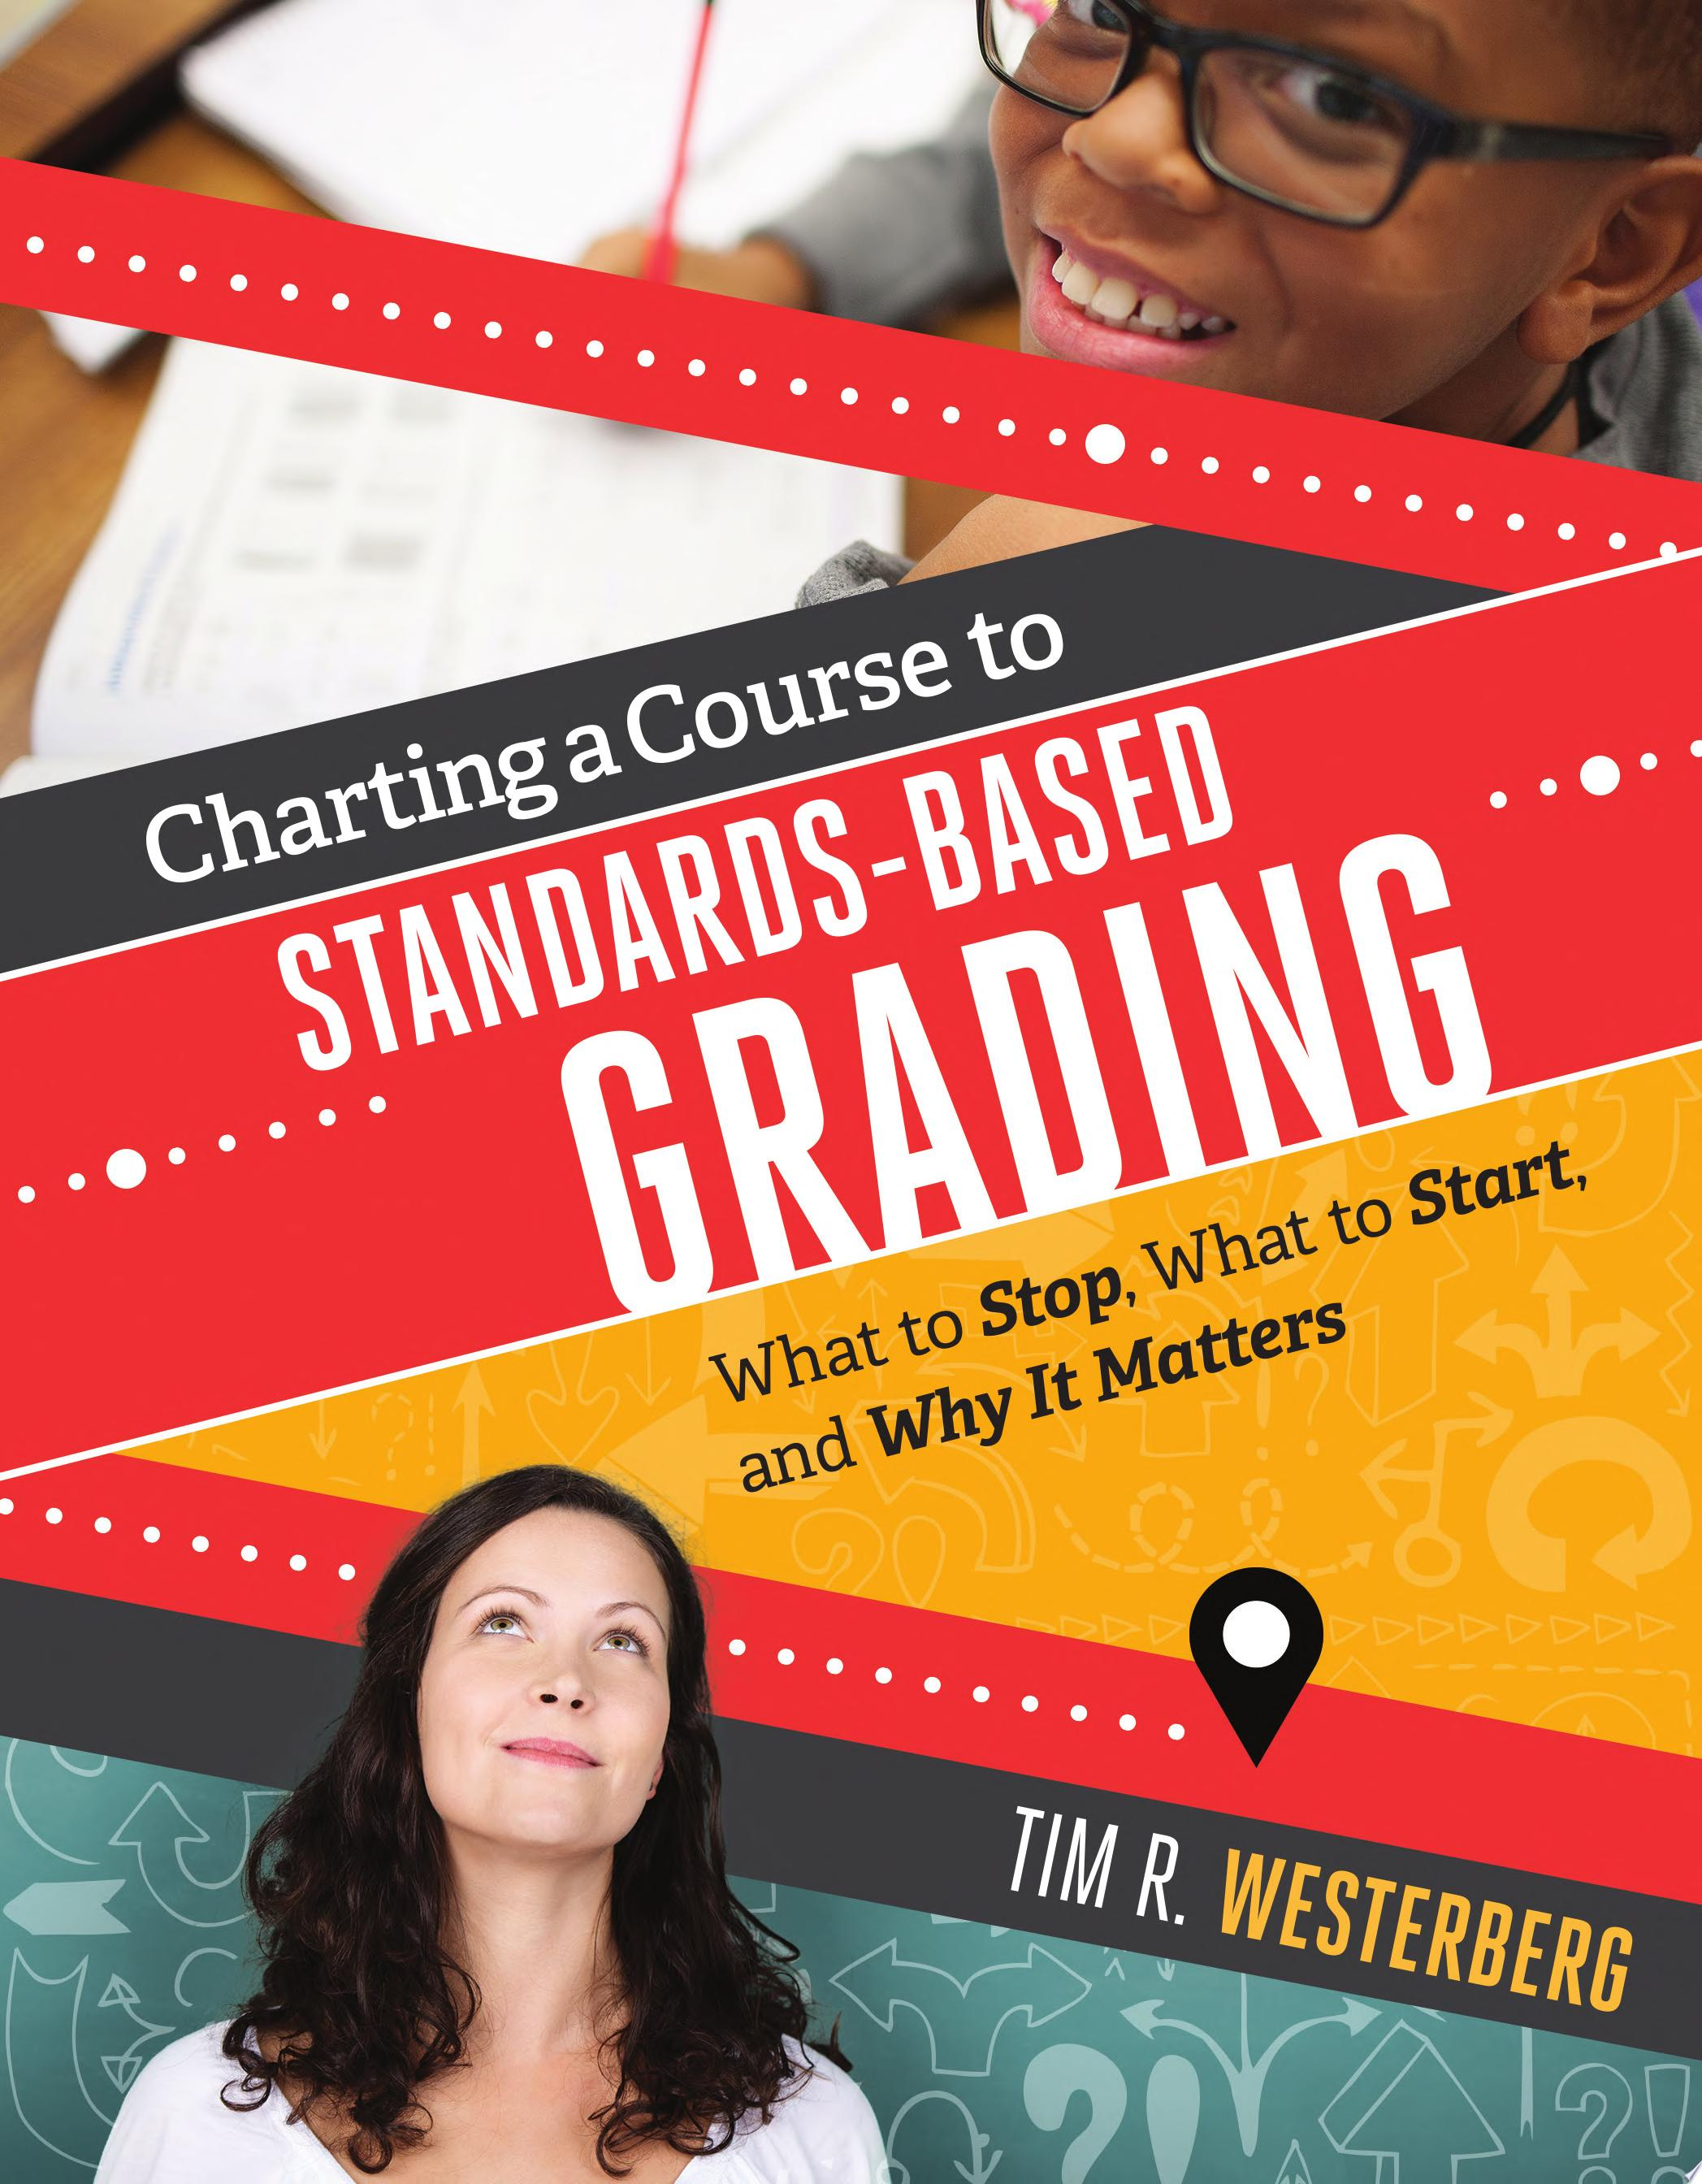 Charting a Course to Standards Based Grading